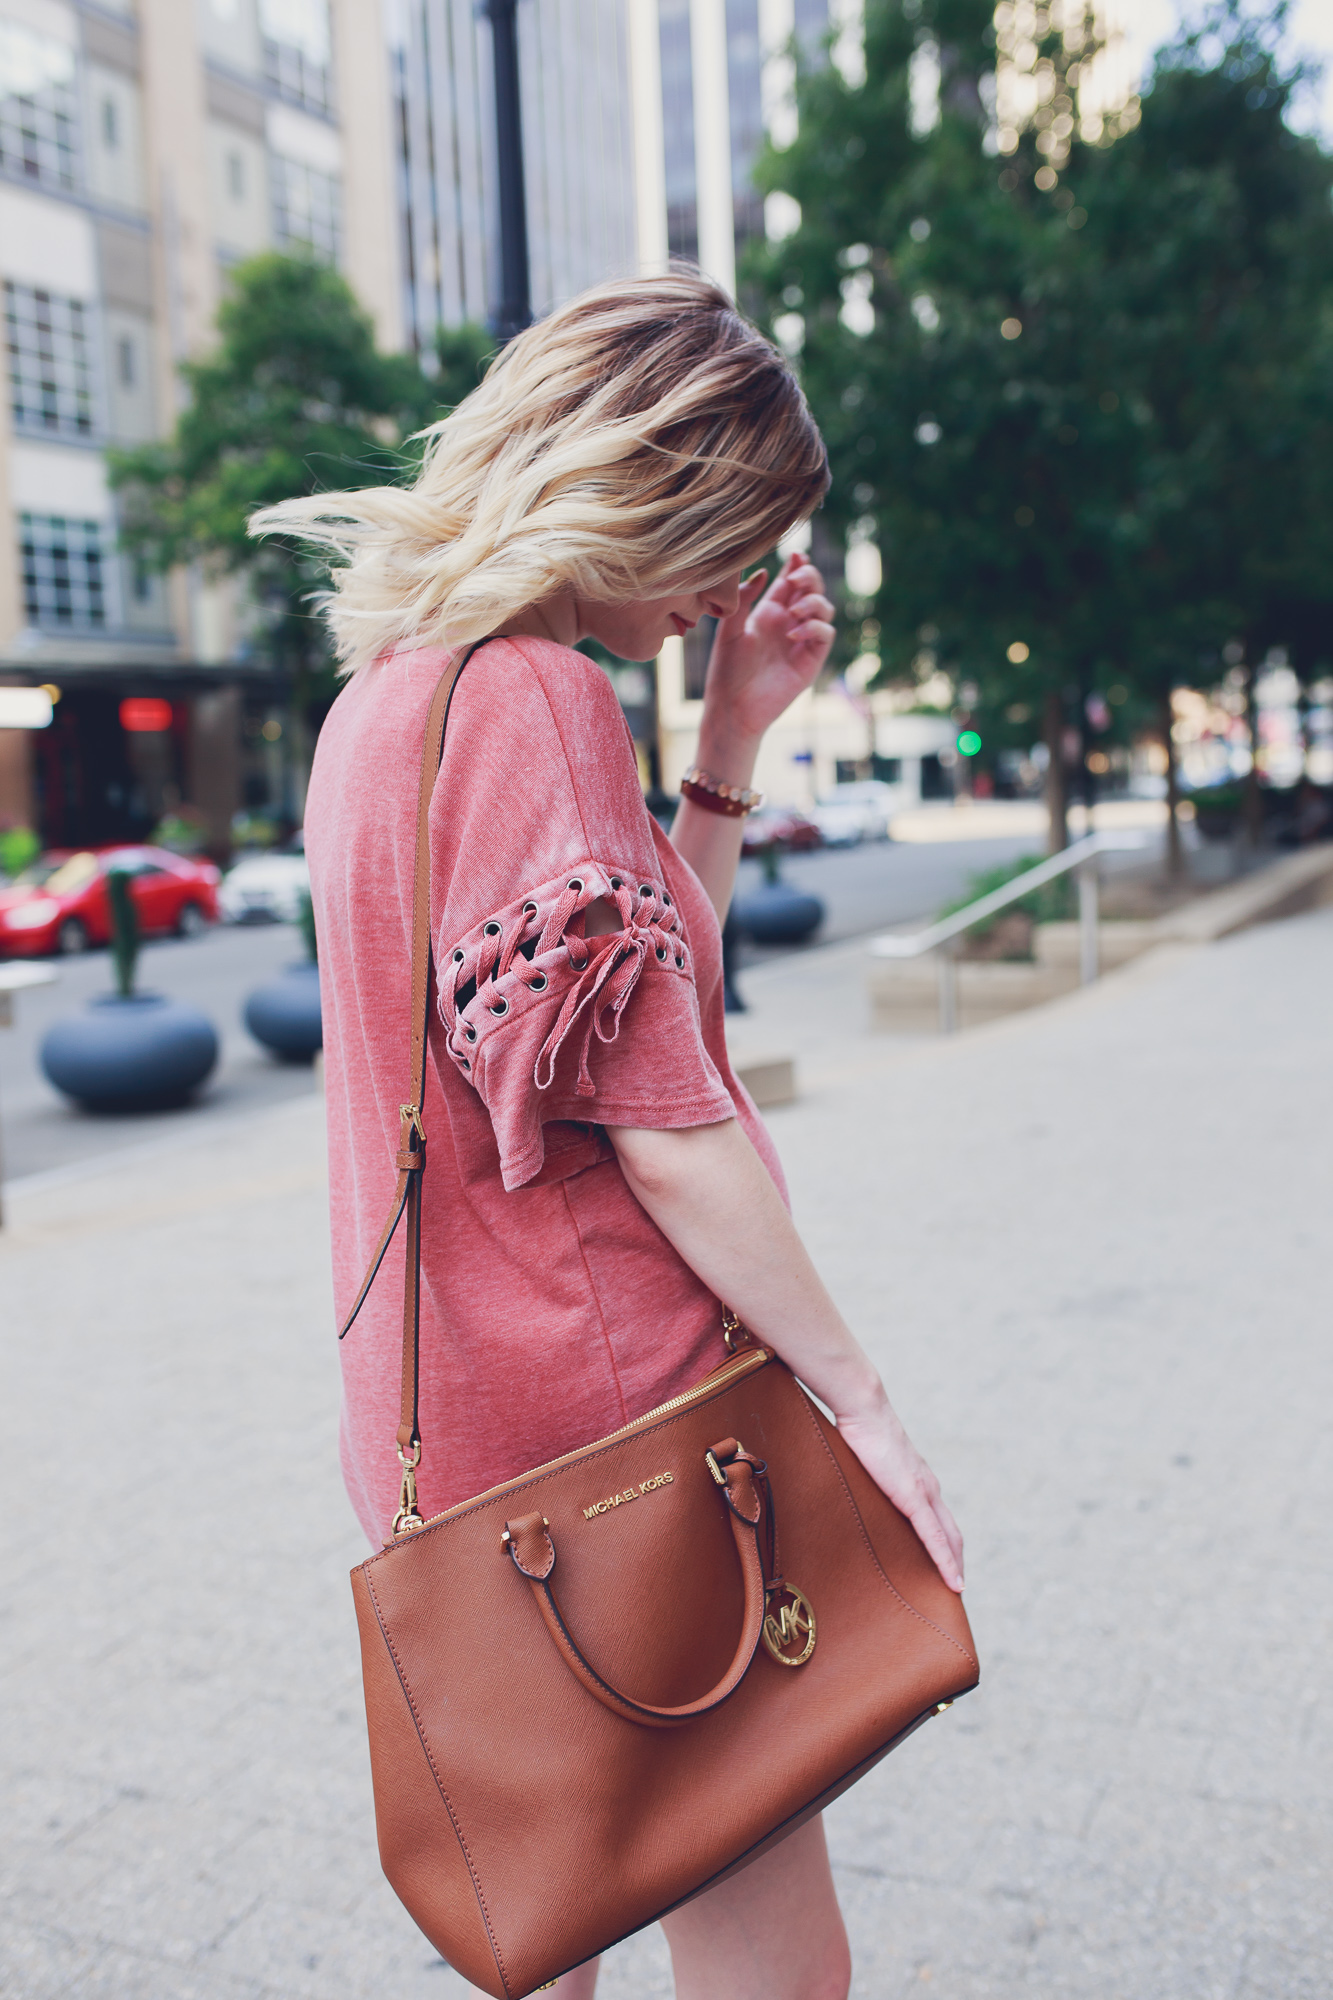 Lifestyle Fashion and beauty blogger Jessica Linn from Linn Style wearing a Forever21 sweater dress and Michael Kors purse in downtown Raleigh North Carolina. Non-maternity maternity outfits.